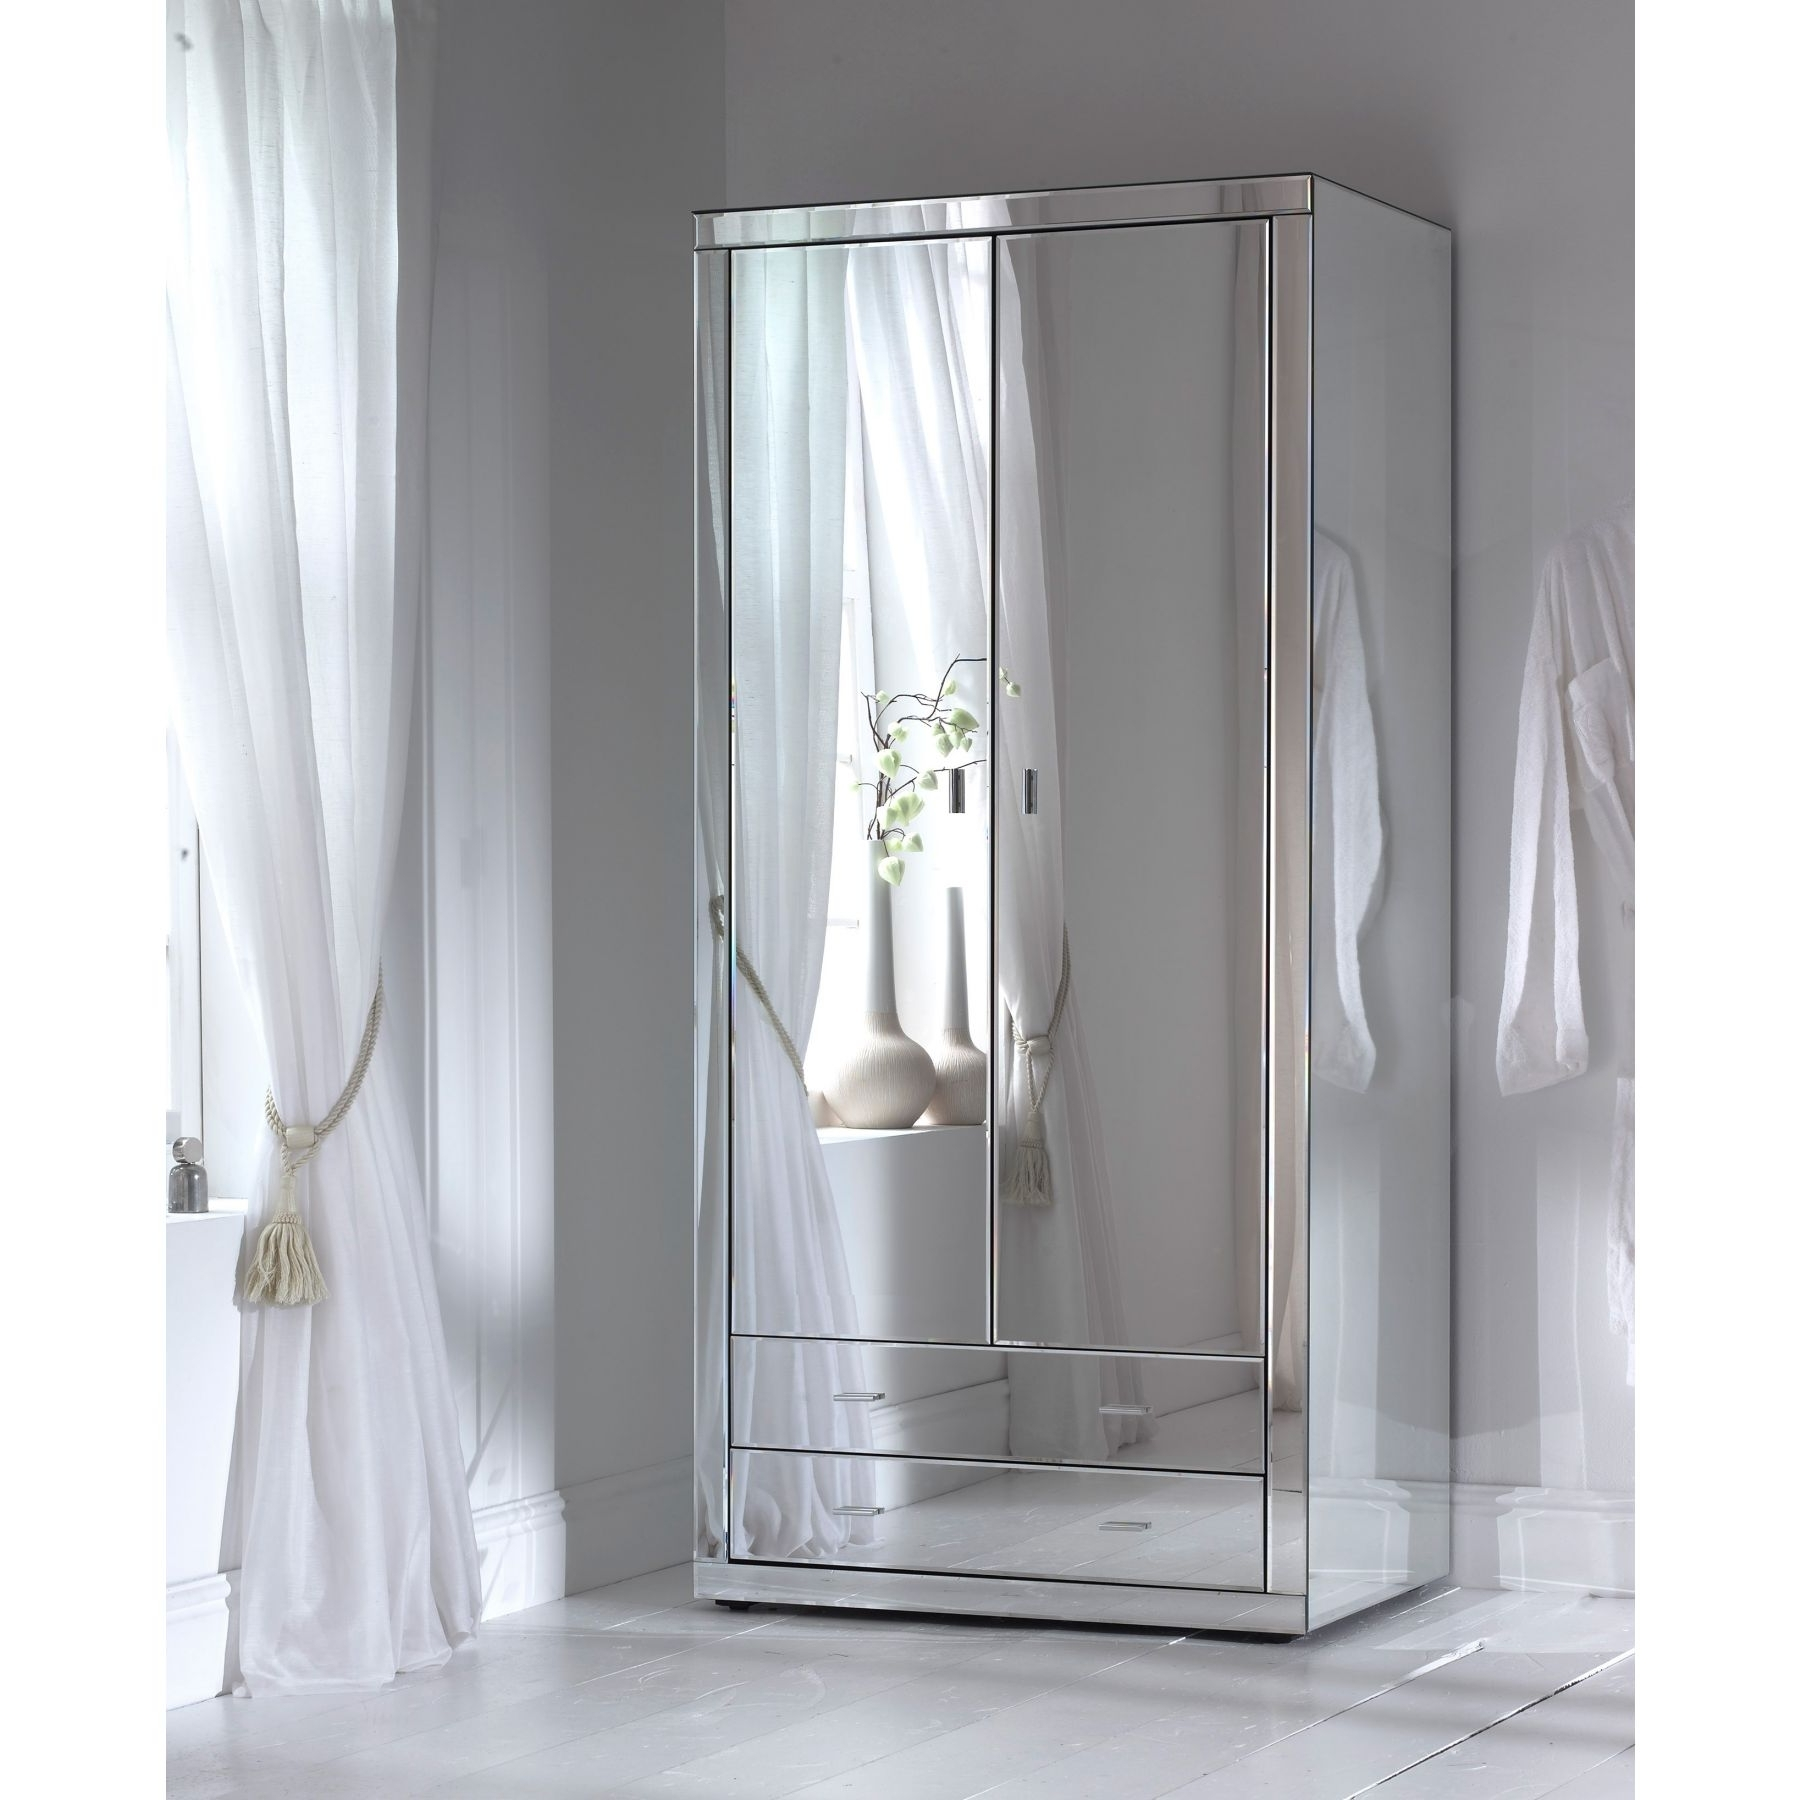 Mirrored Wardrobes With Drawers In 2017 White Wardrobe With Mirror Ebay 3 Door And Drawers Gloss You Will (View 4 of 15)